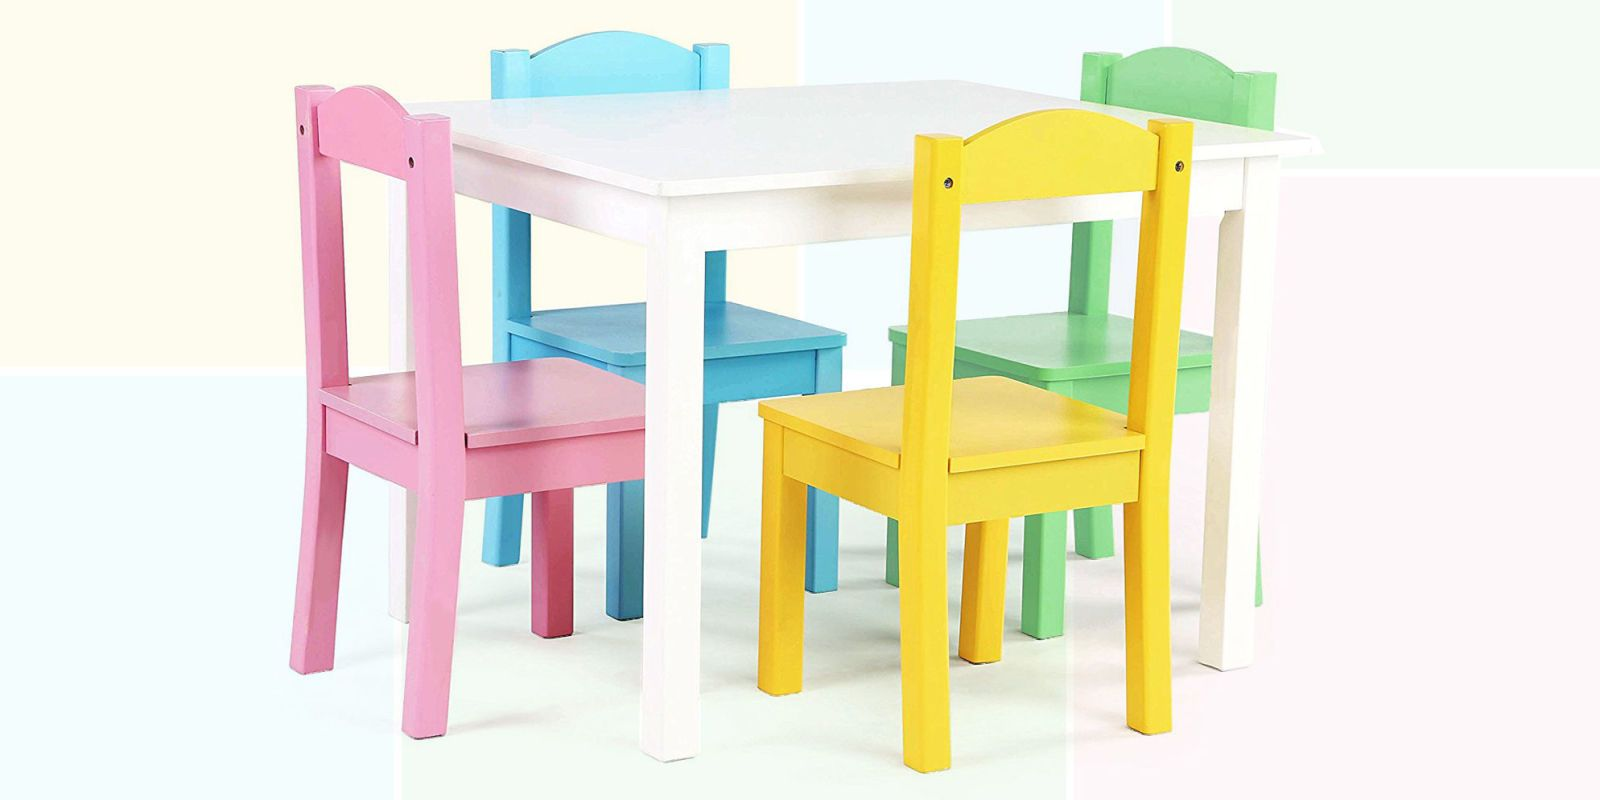 toddler table and chairs  sc 1 st  BestProducts.com : toddler table and chair set plastic - pezcame.com